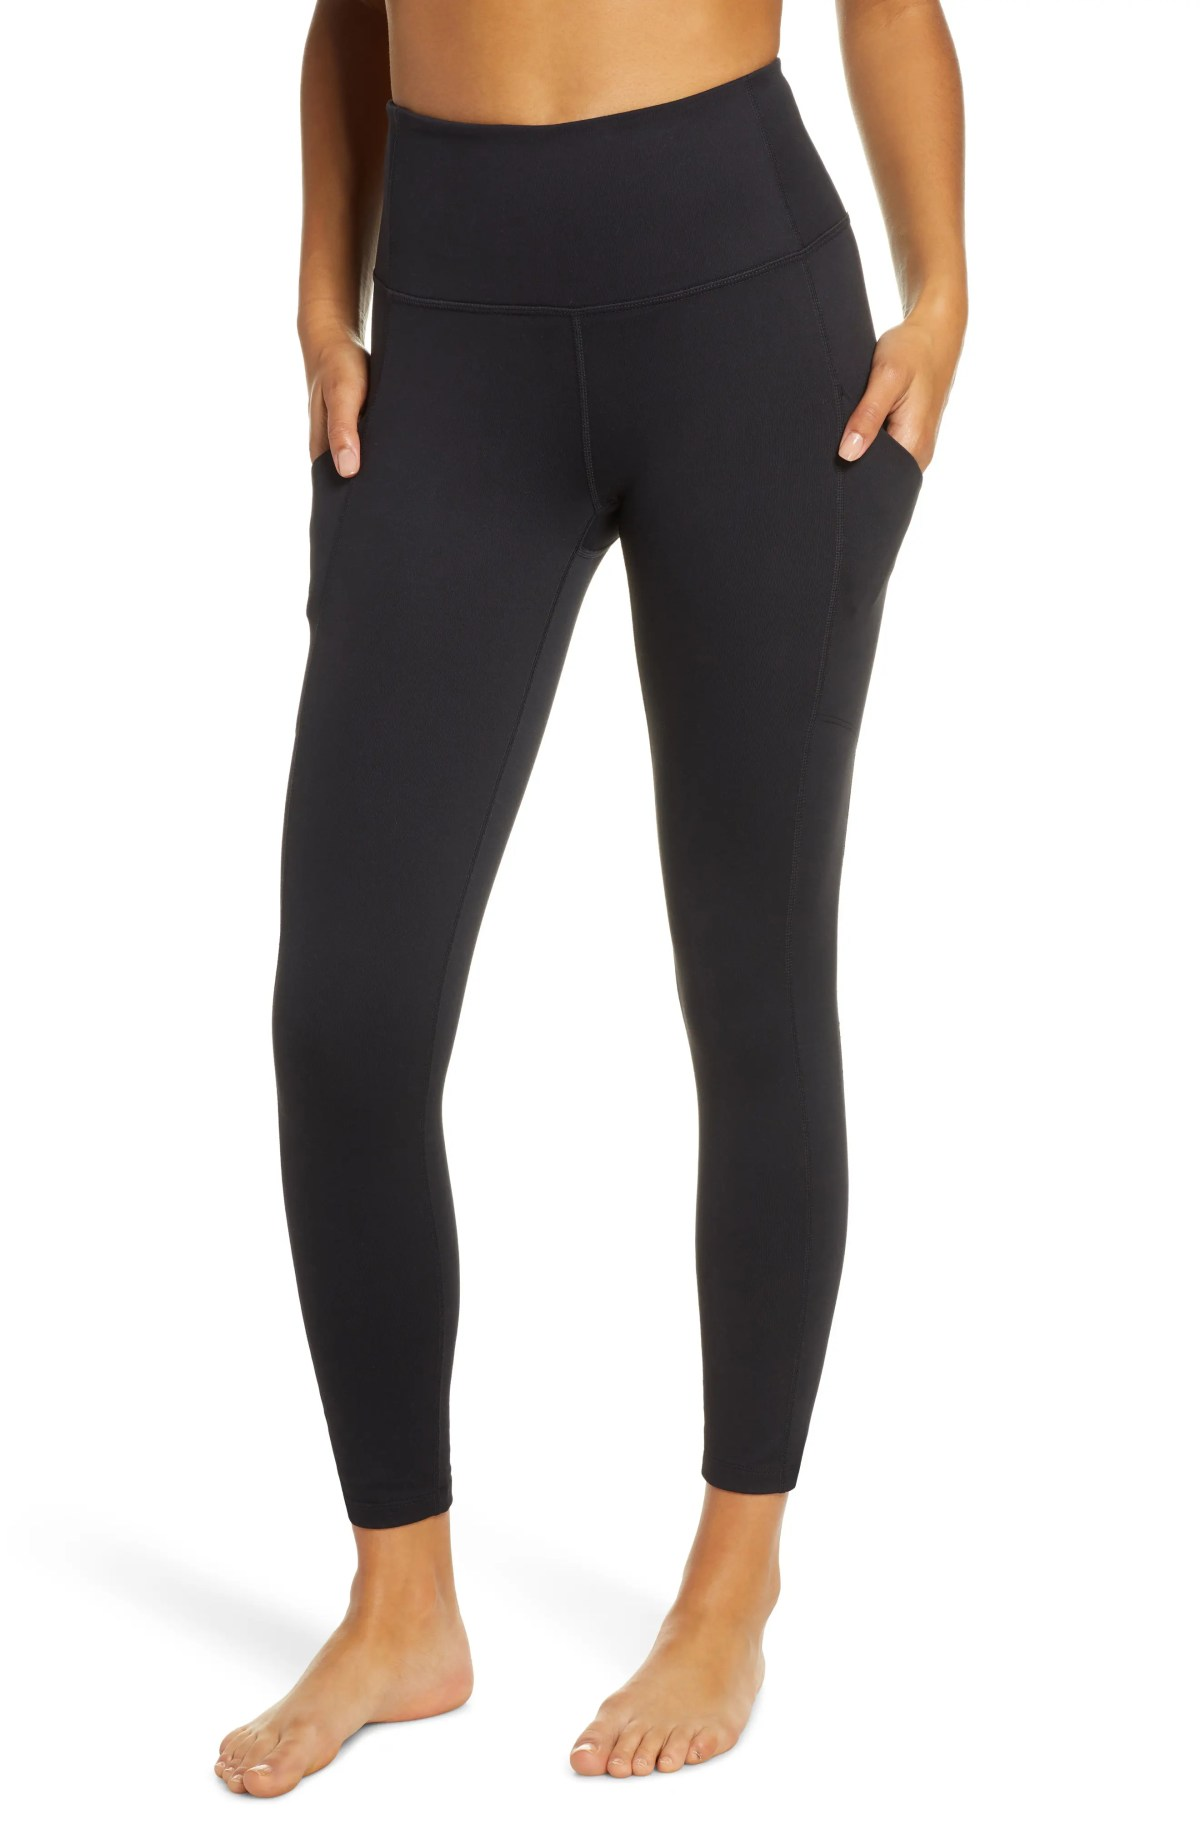 ZELLA Live In High Waist Pocket 7/8 Leggings, Main, color, BLACK